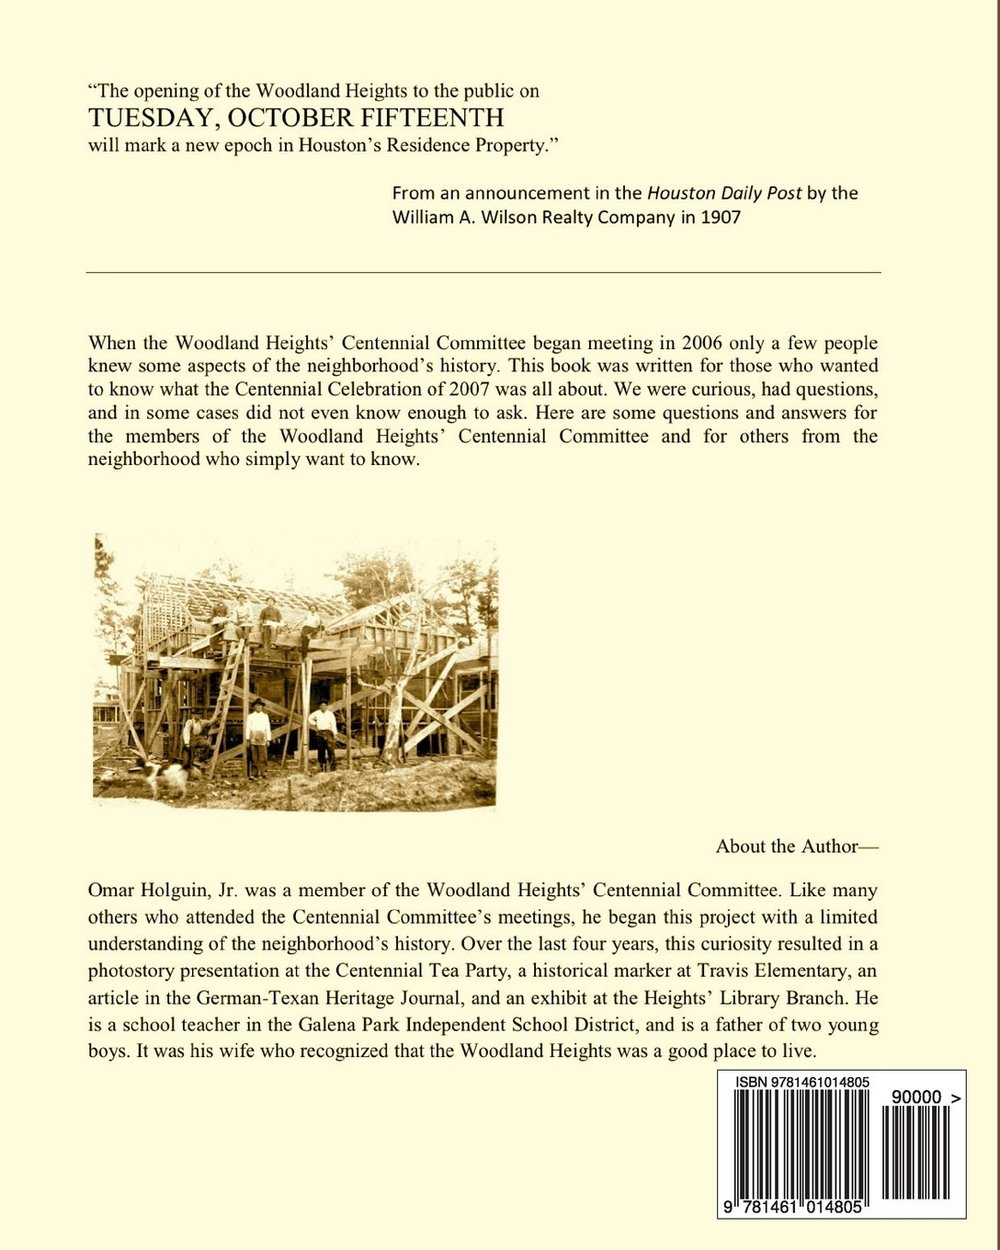 Recollections A History of the Woodland Heights and Surrounding Communities (back).jpg